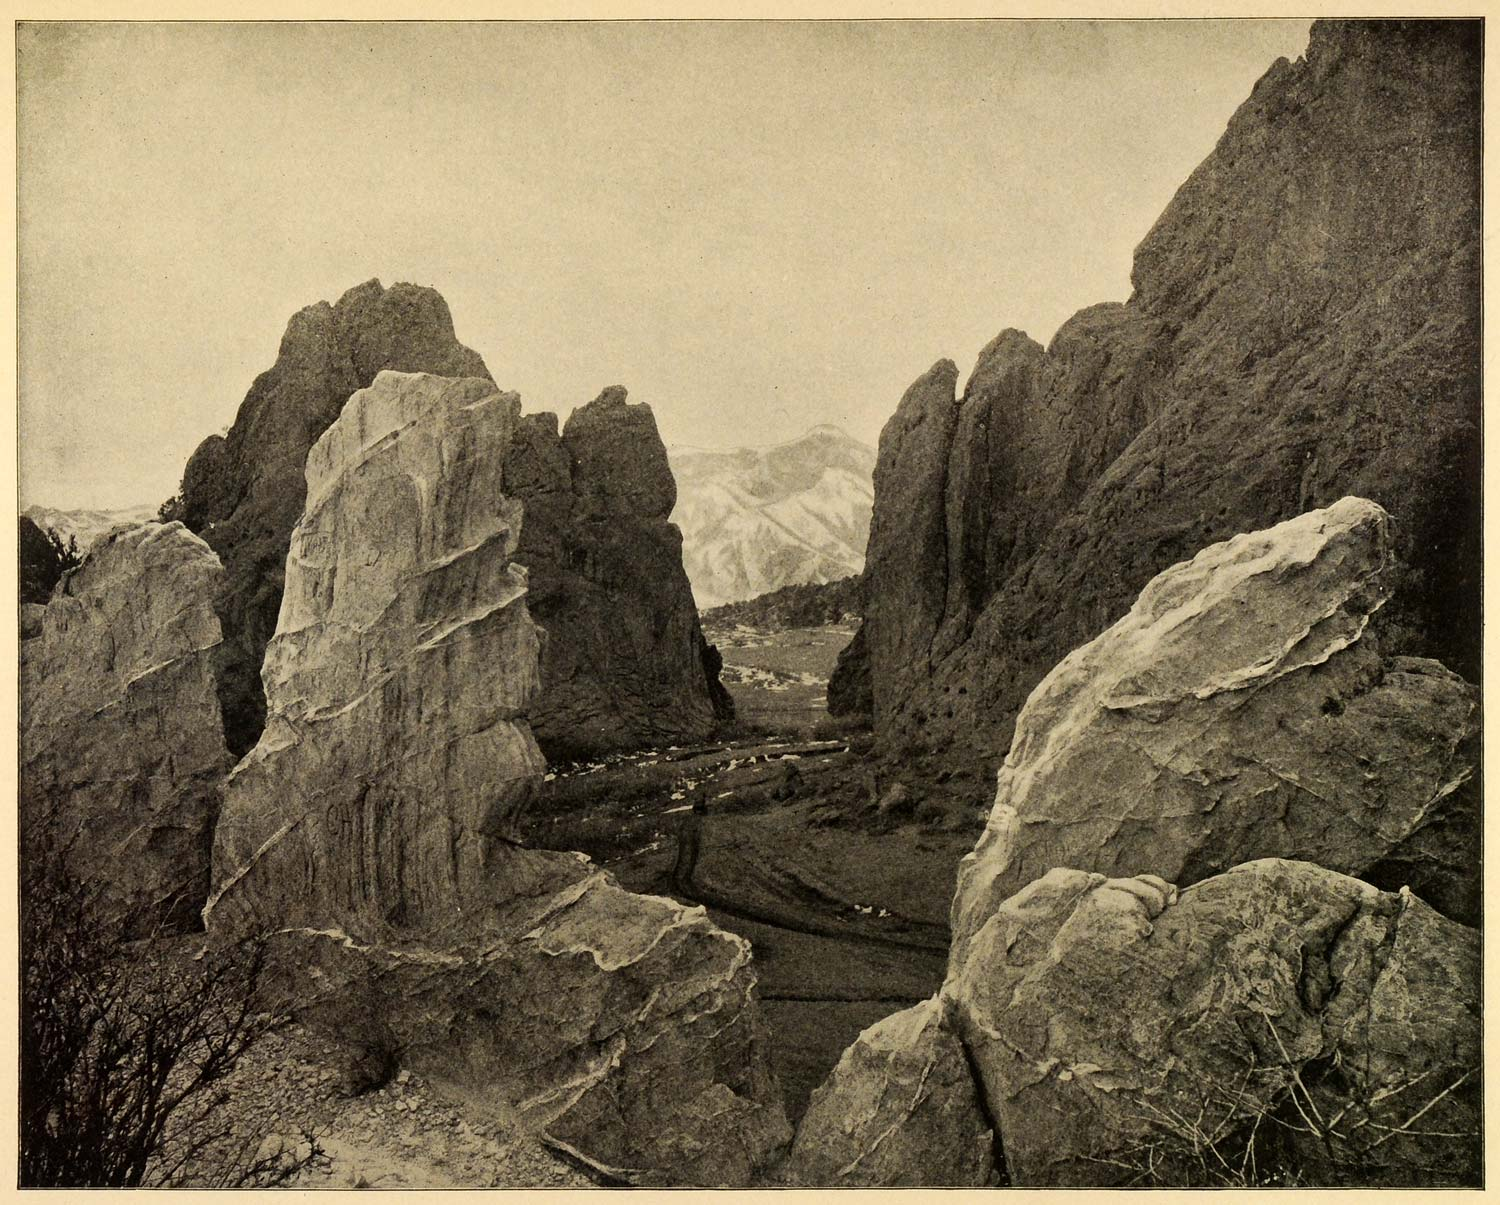 1899 Print Garden Gods Natural National Park Colorado Rock Formation PPB1